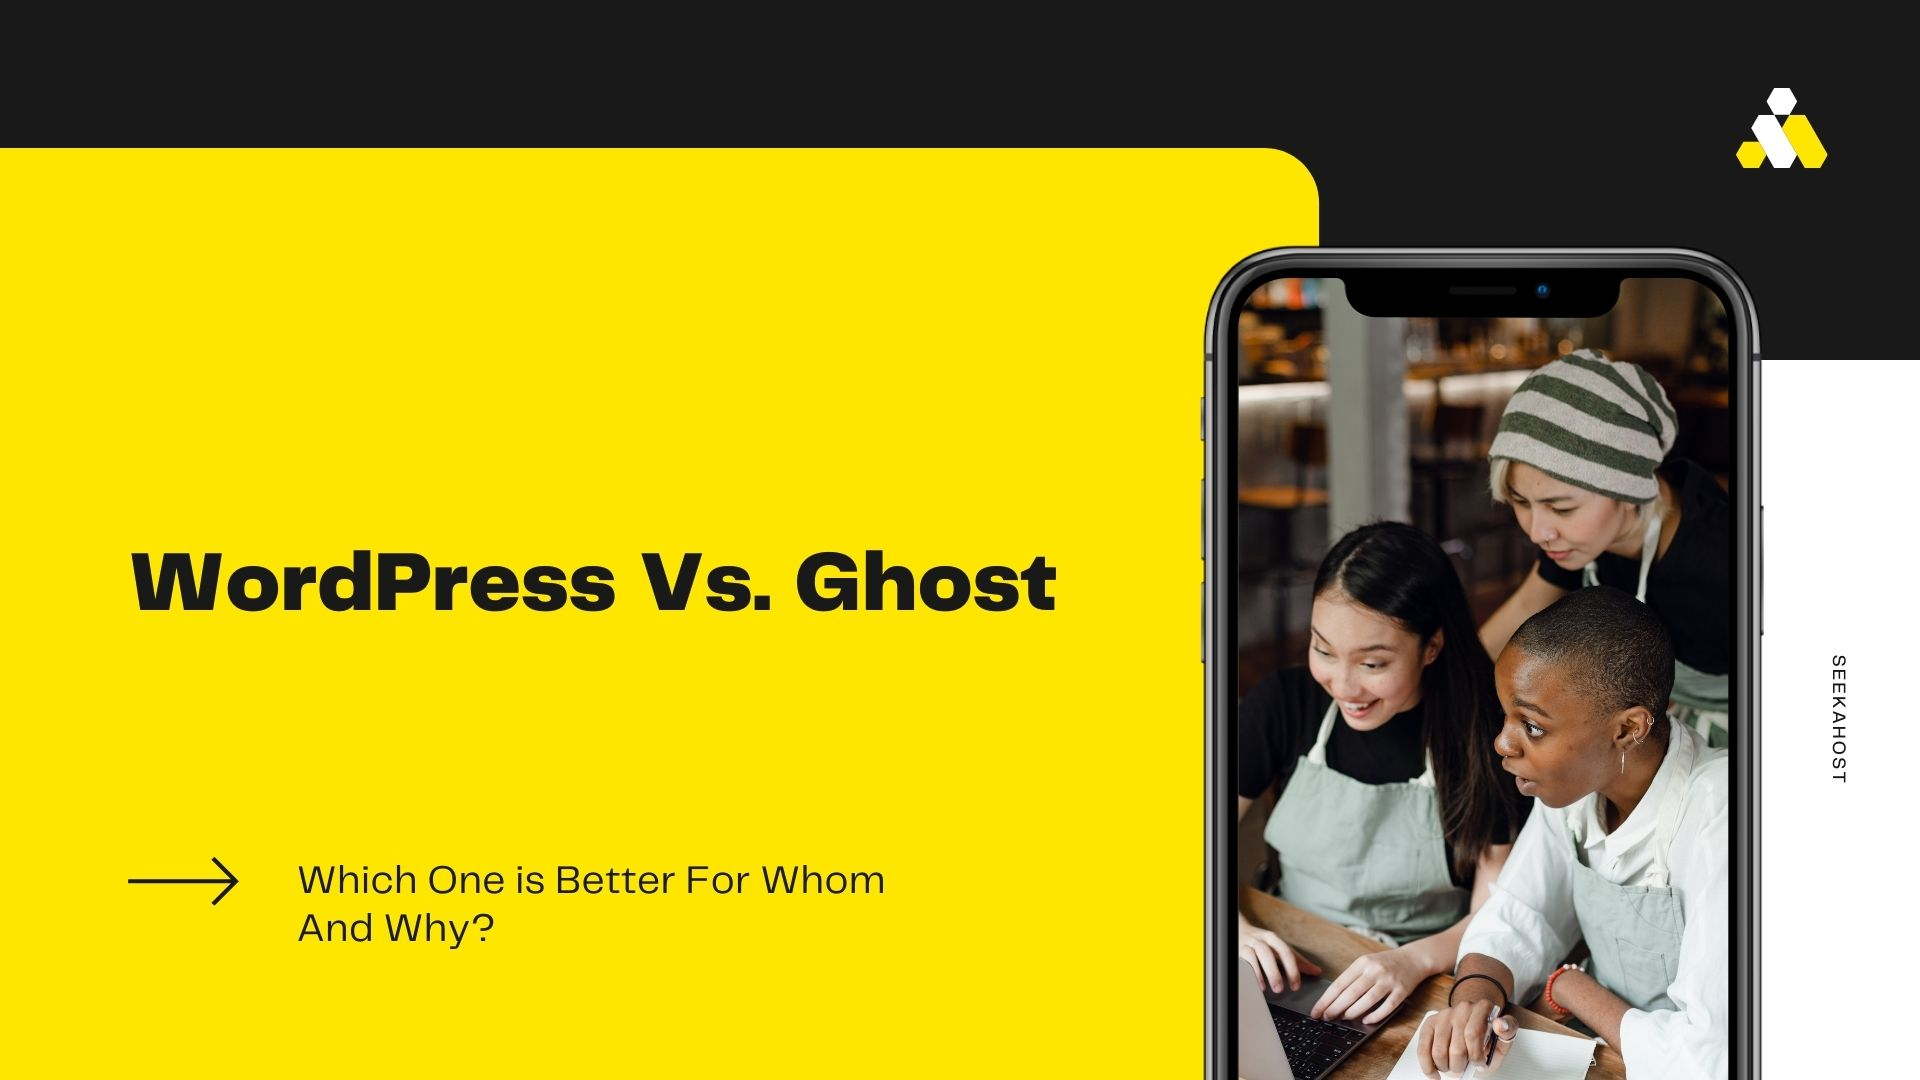 WordPress Vs. Ghost